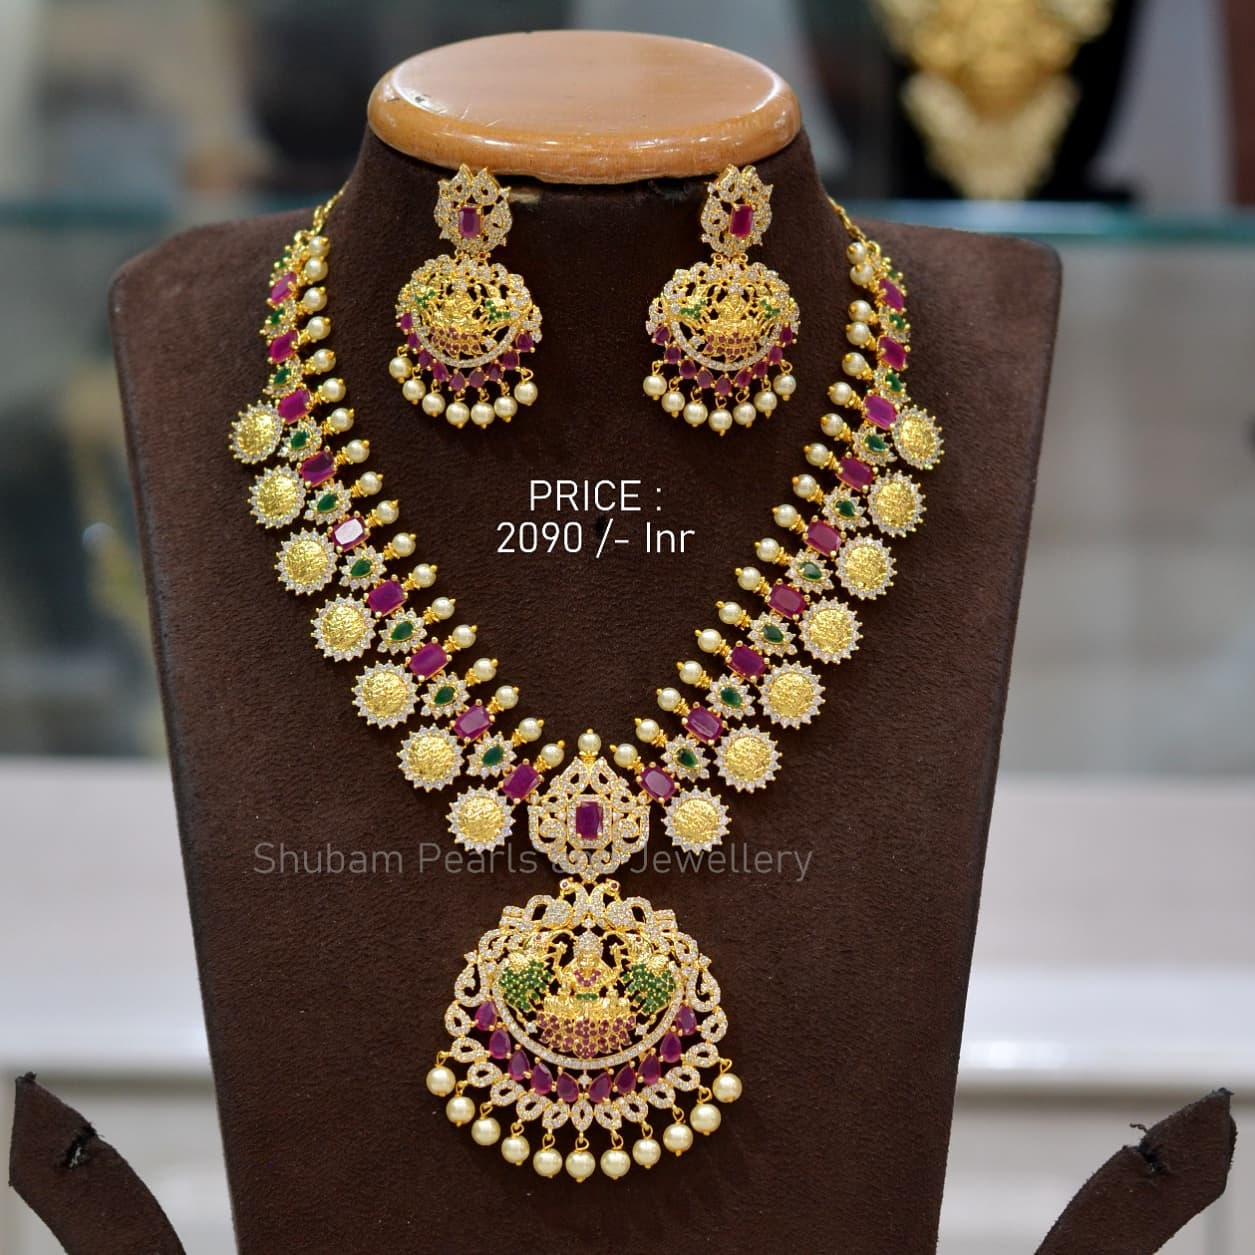 Unique design of Goddess laxmi devi pendant with ramparivar kasul in golden polish with multi color stone and screwback earrings  For order Whatsapp 09030271018 begum bazar one gram gold shops guttapusalu haram 1 gram gold one gram gold long chains